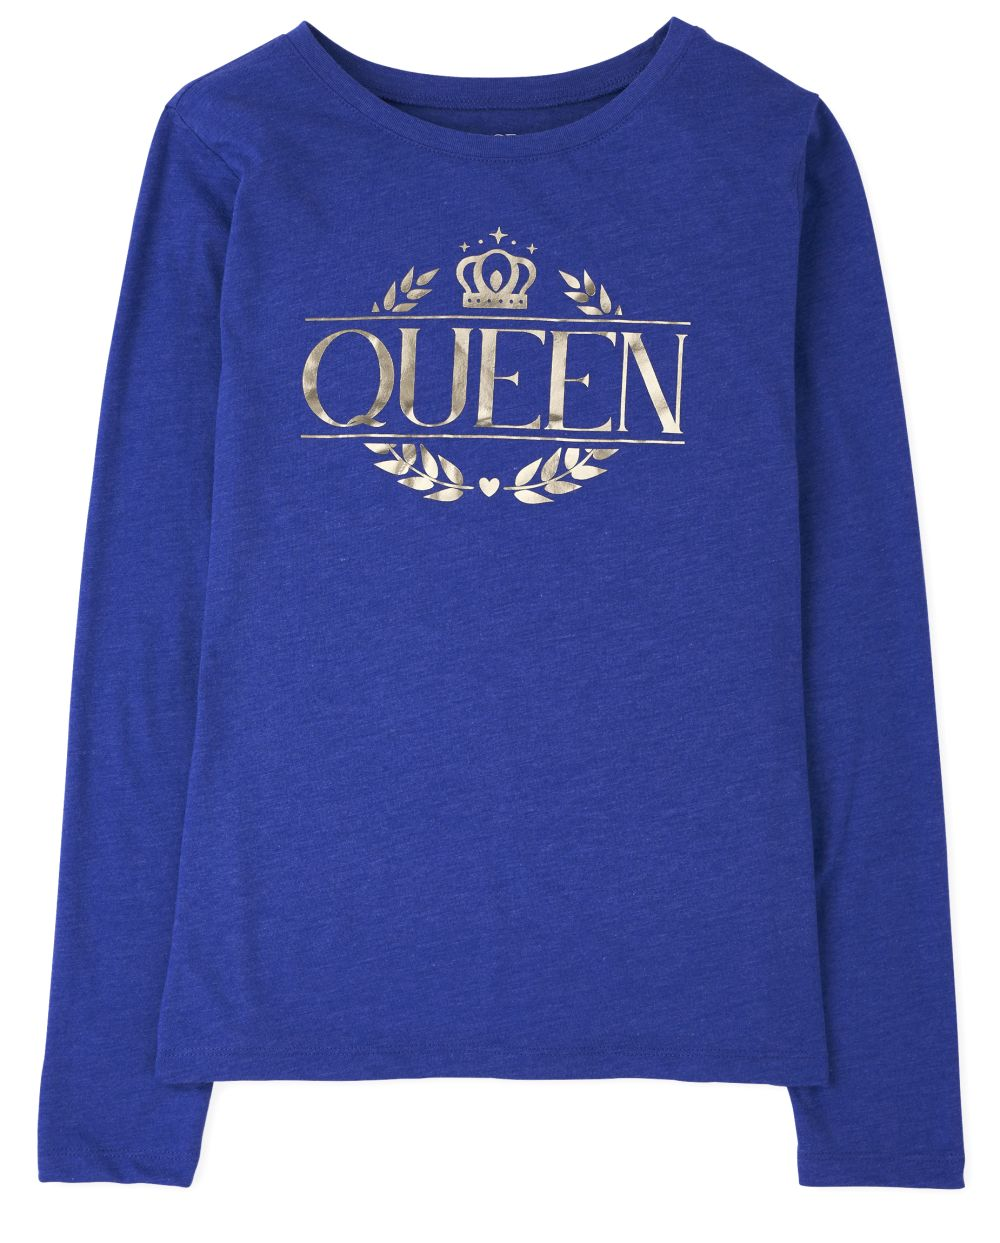 Womens Matching Family Foil Royal Graphic Tee